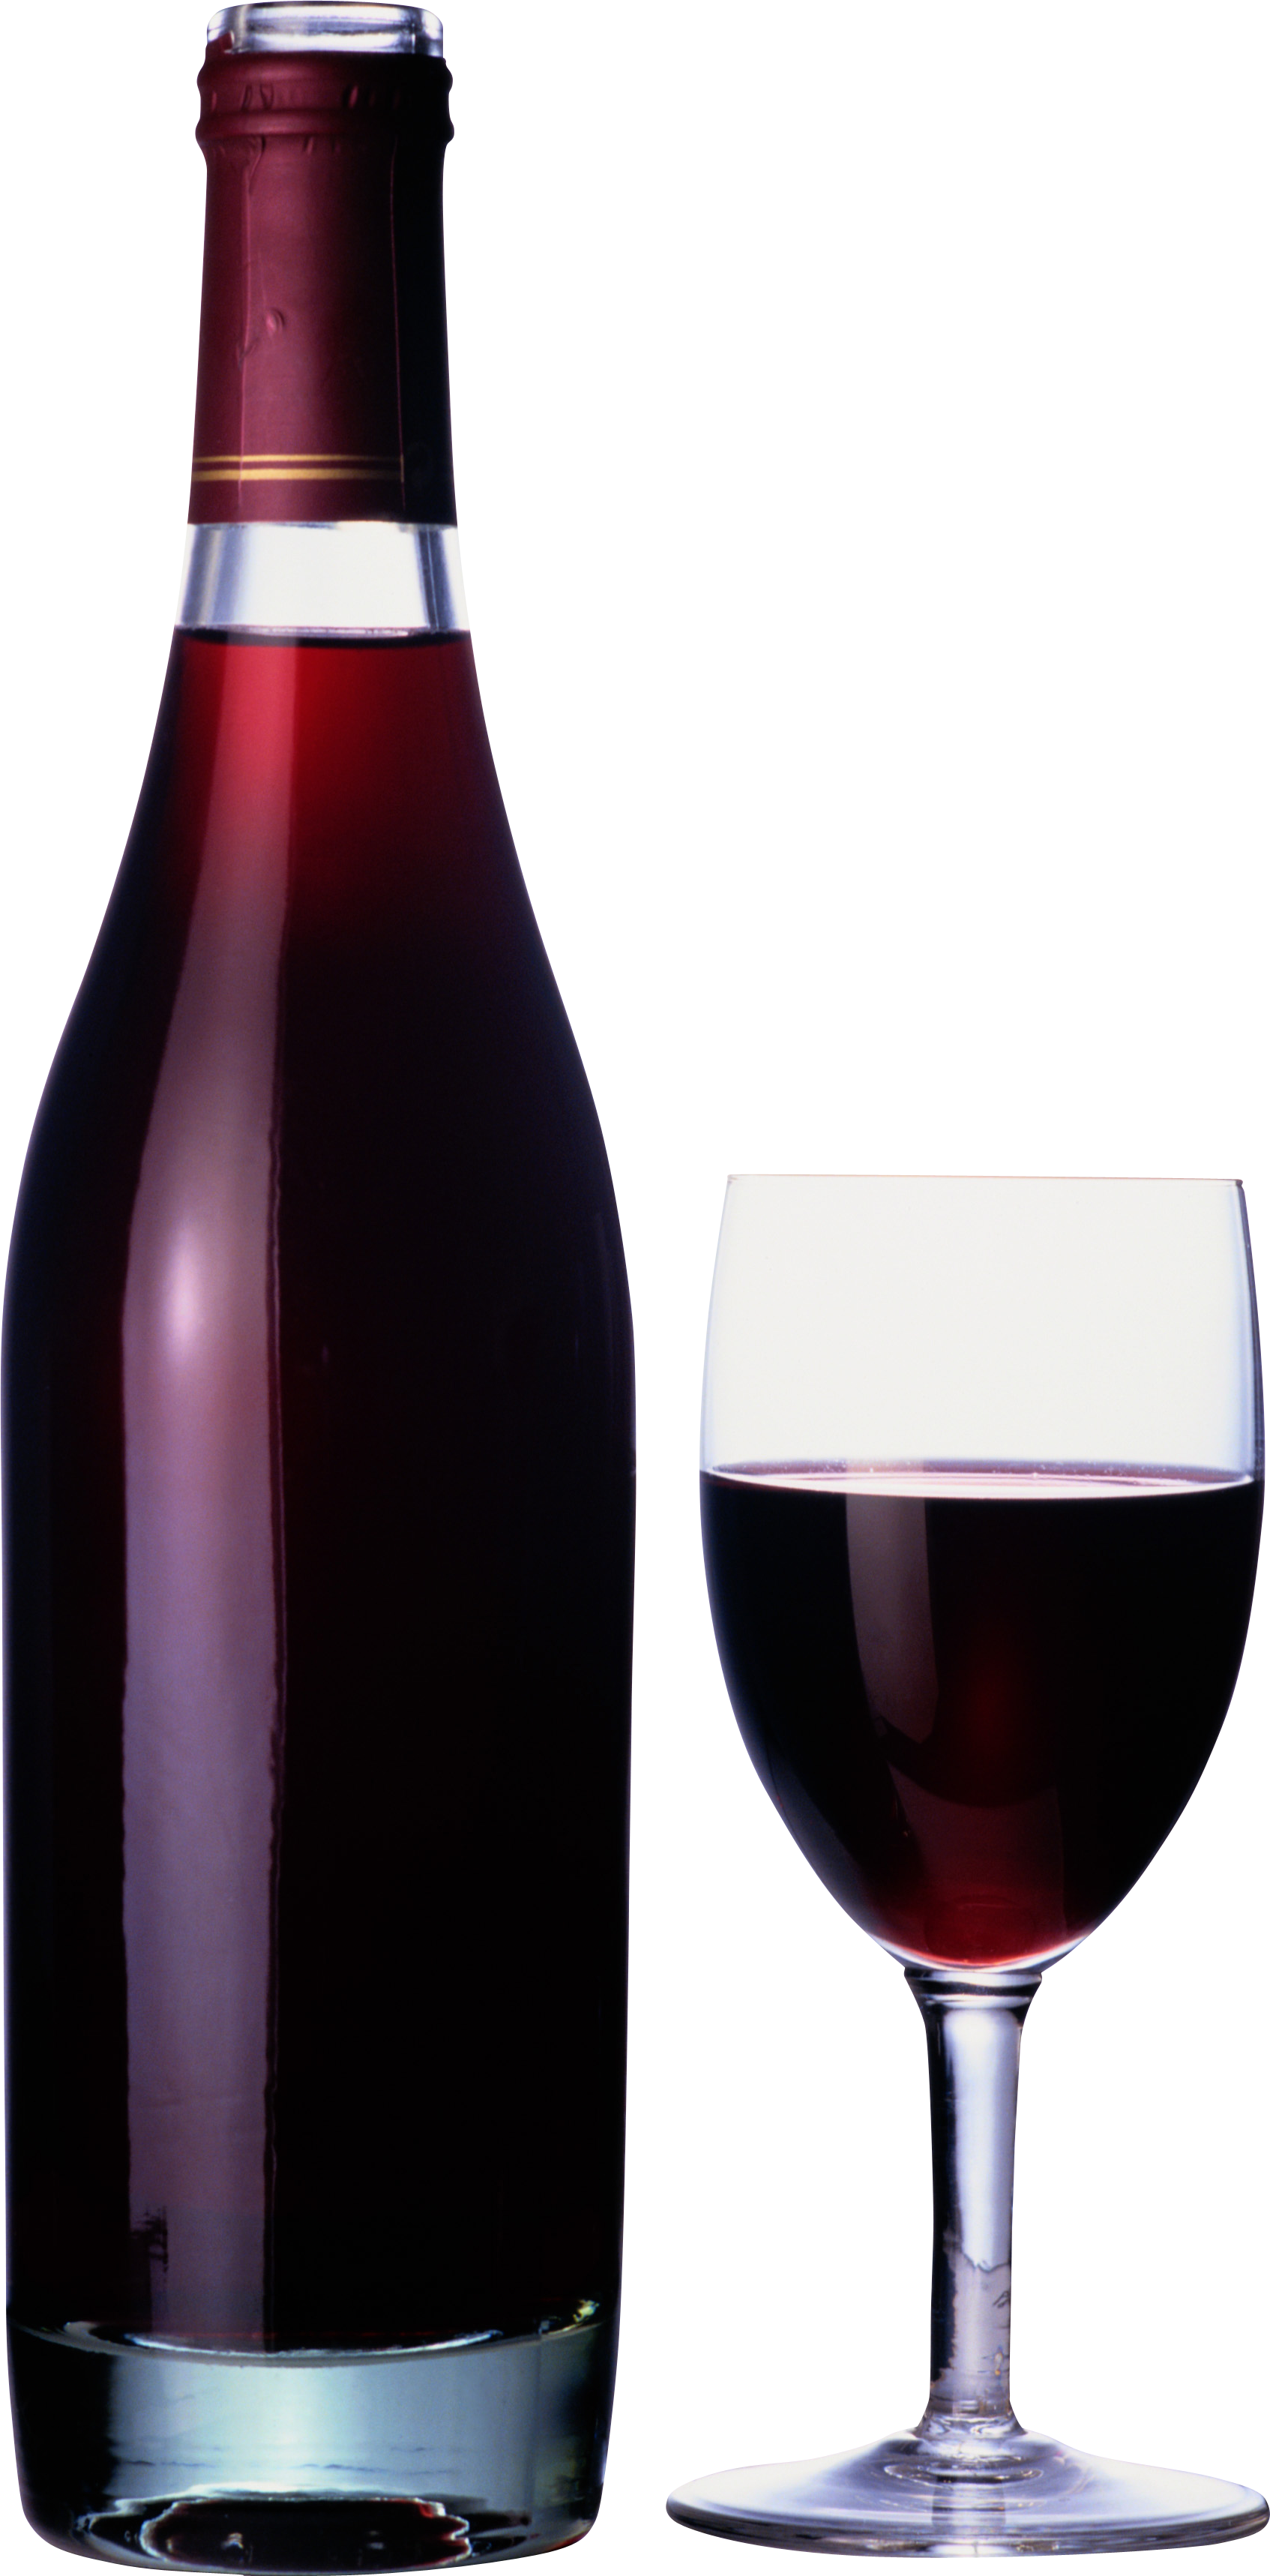 Png Wine Bottle And Glass Hdpng.com 1694 - Wine Bottle And Glass, Transparent background PNG HD thumbnail